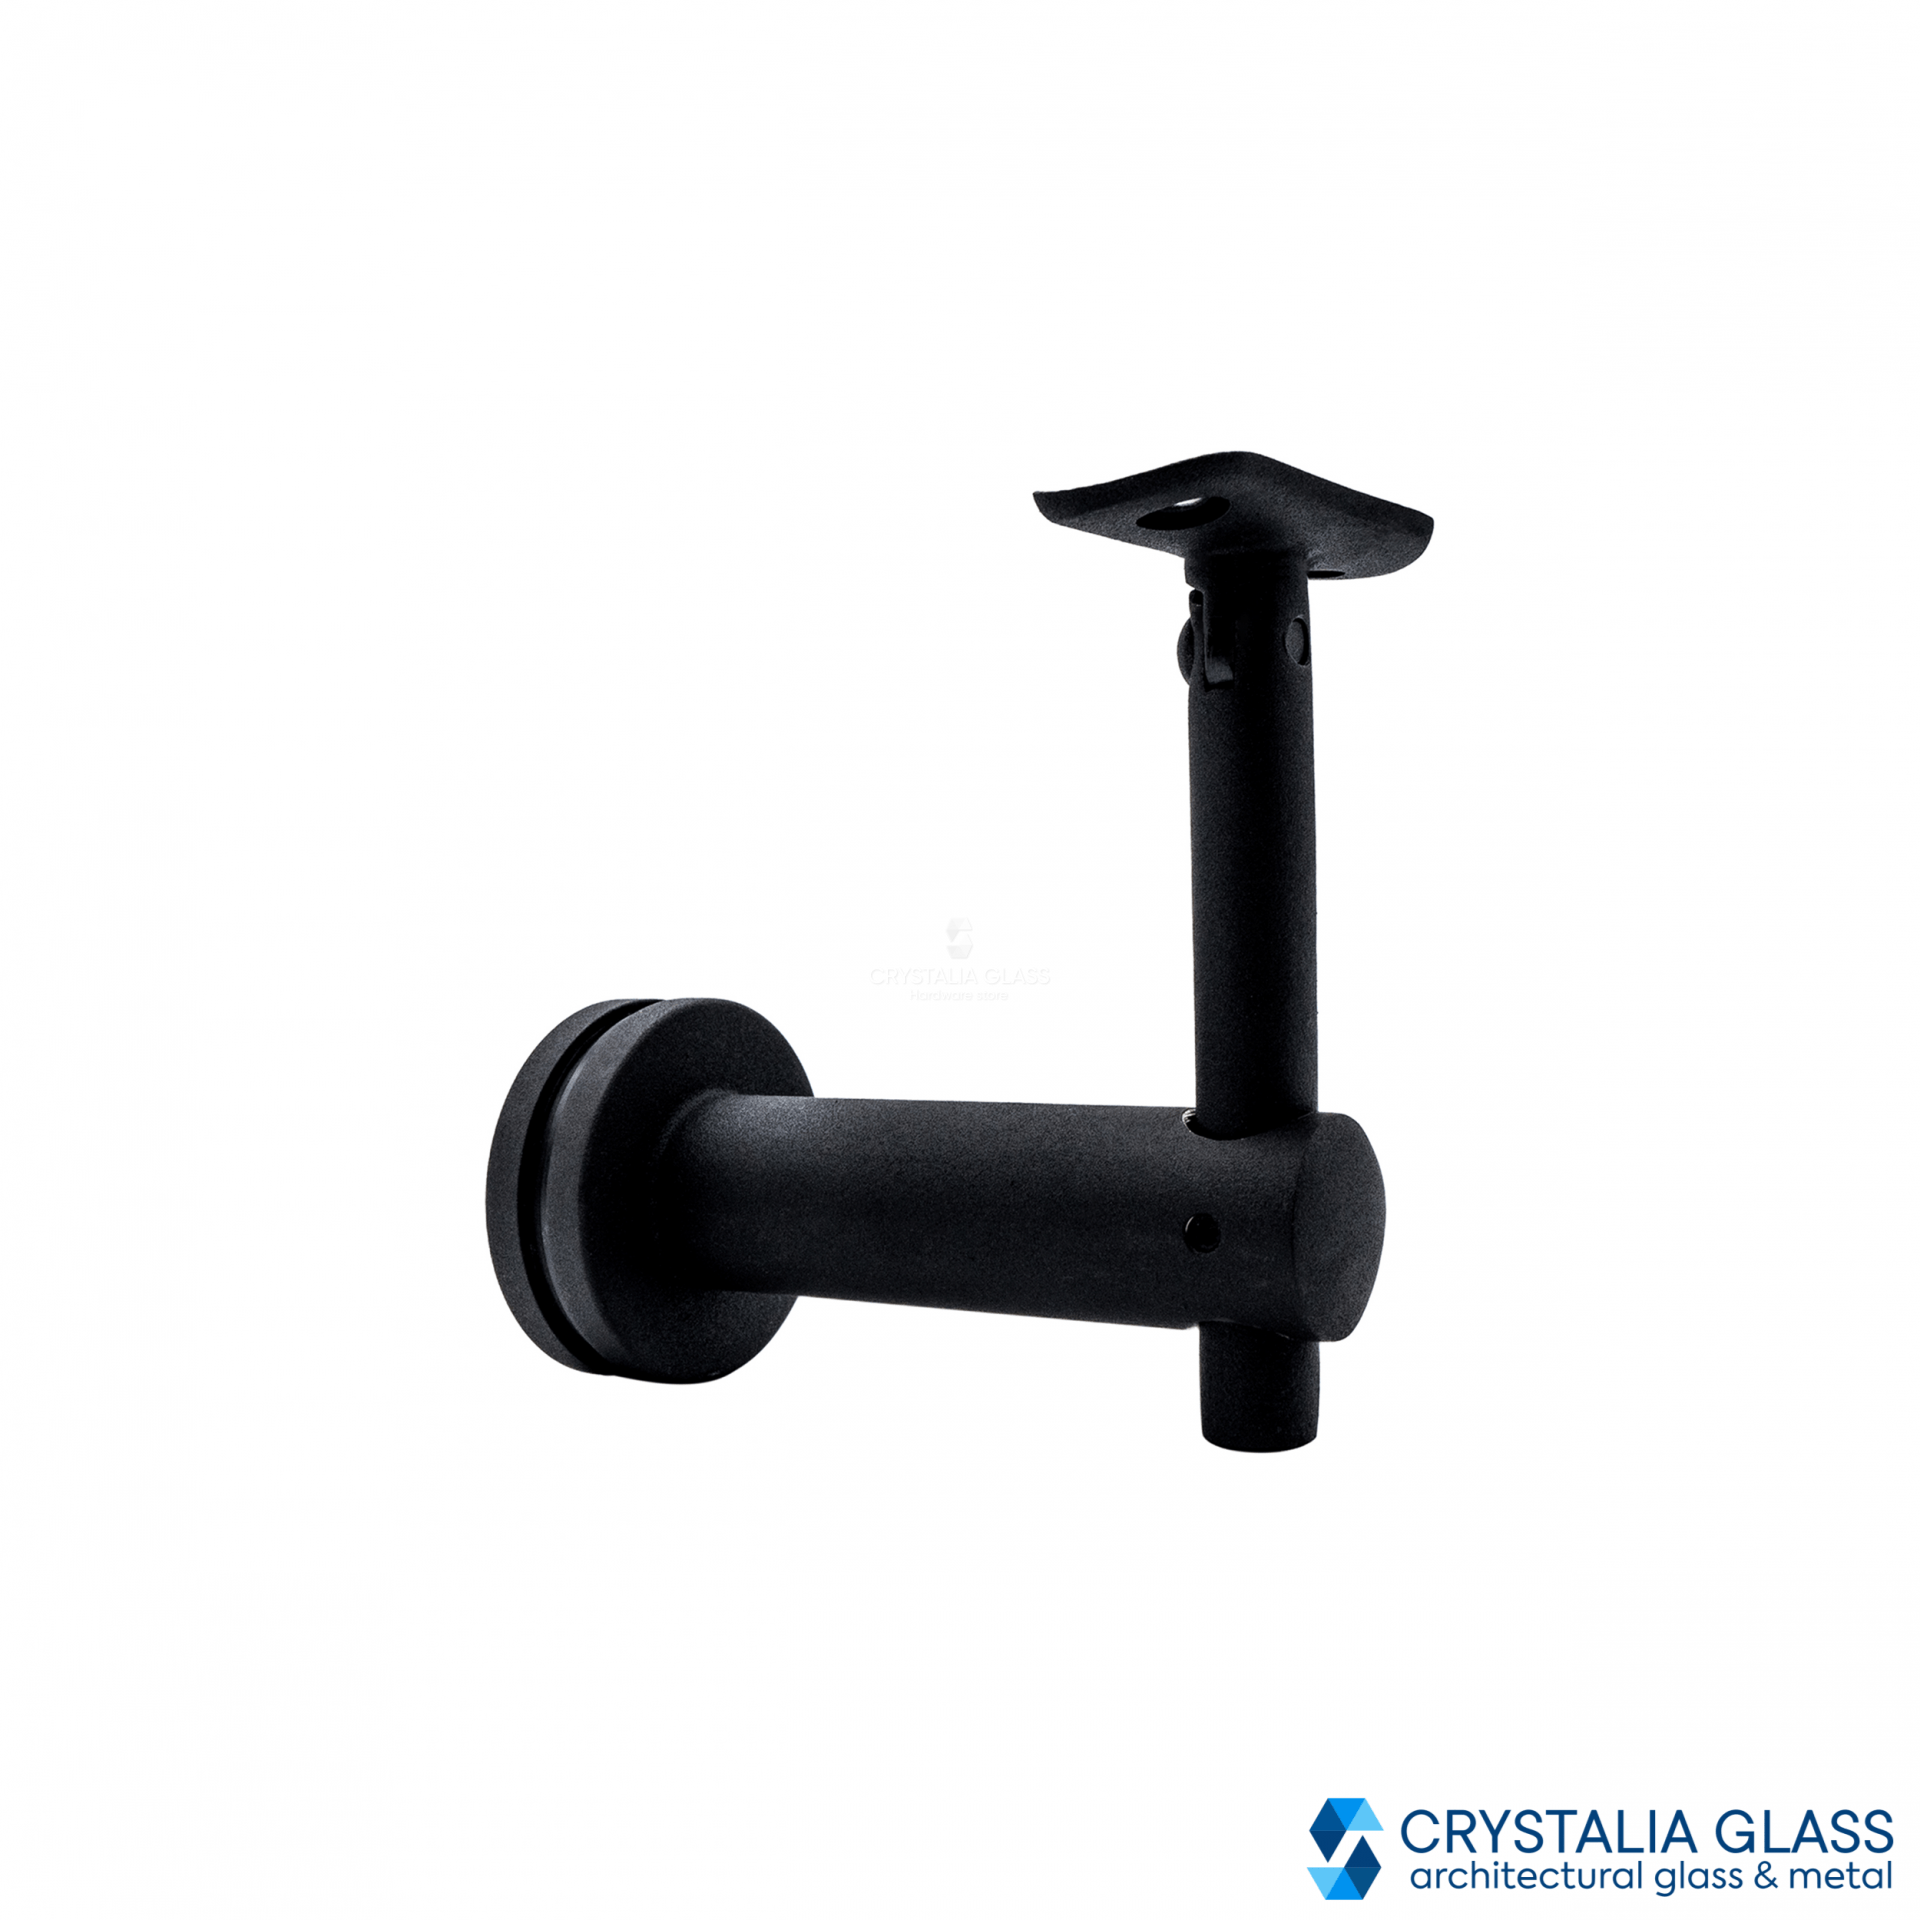 CG Black Matte Glass Mounted Hand Rail Bracket Flat Surface